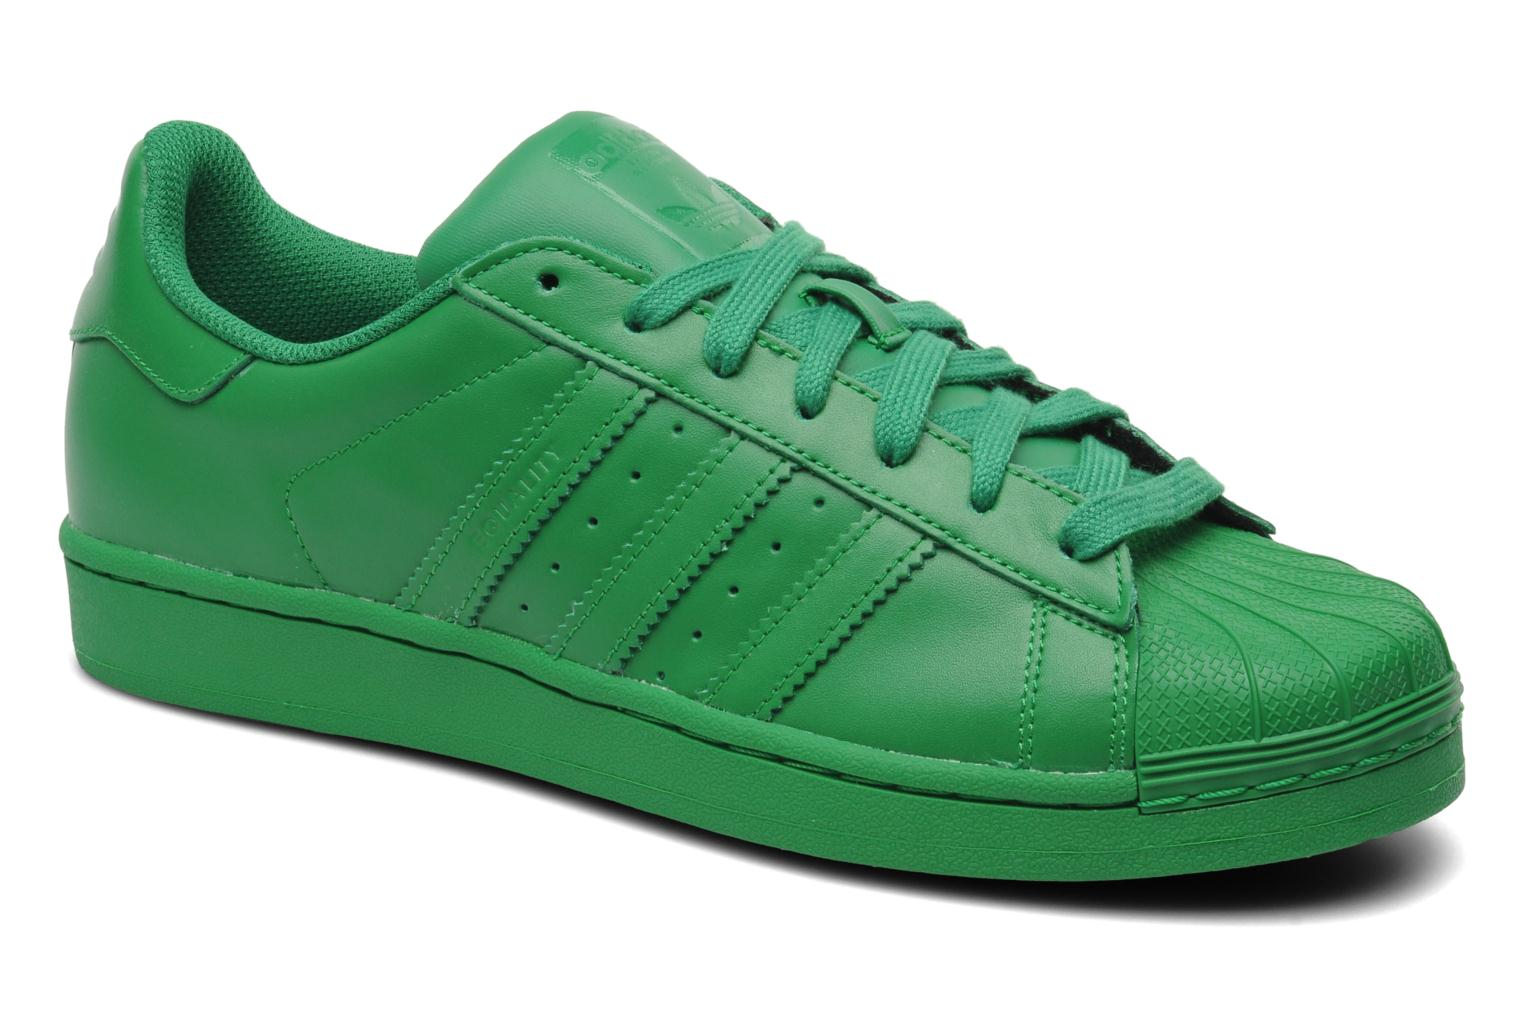 adidas originals superstar groen